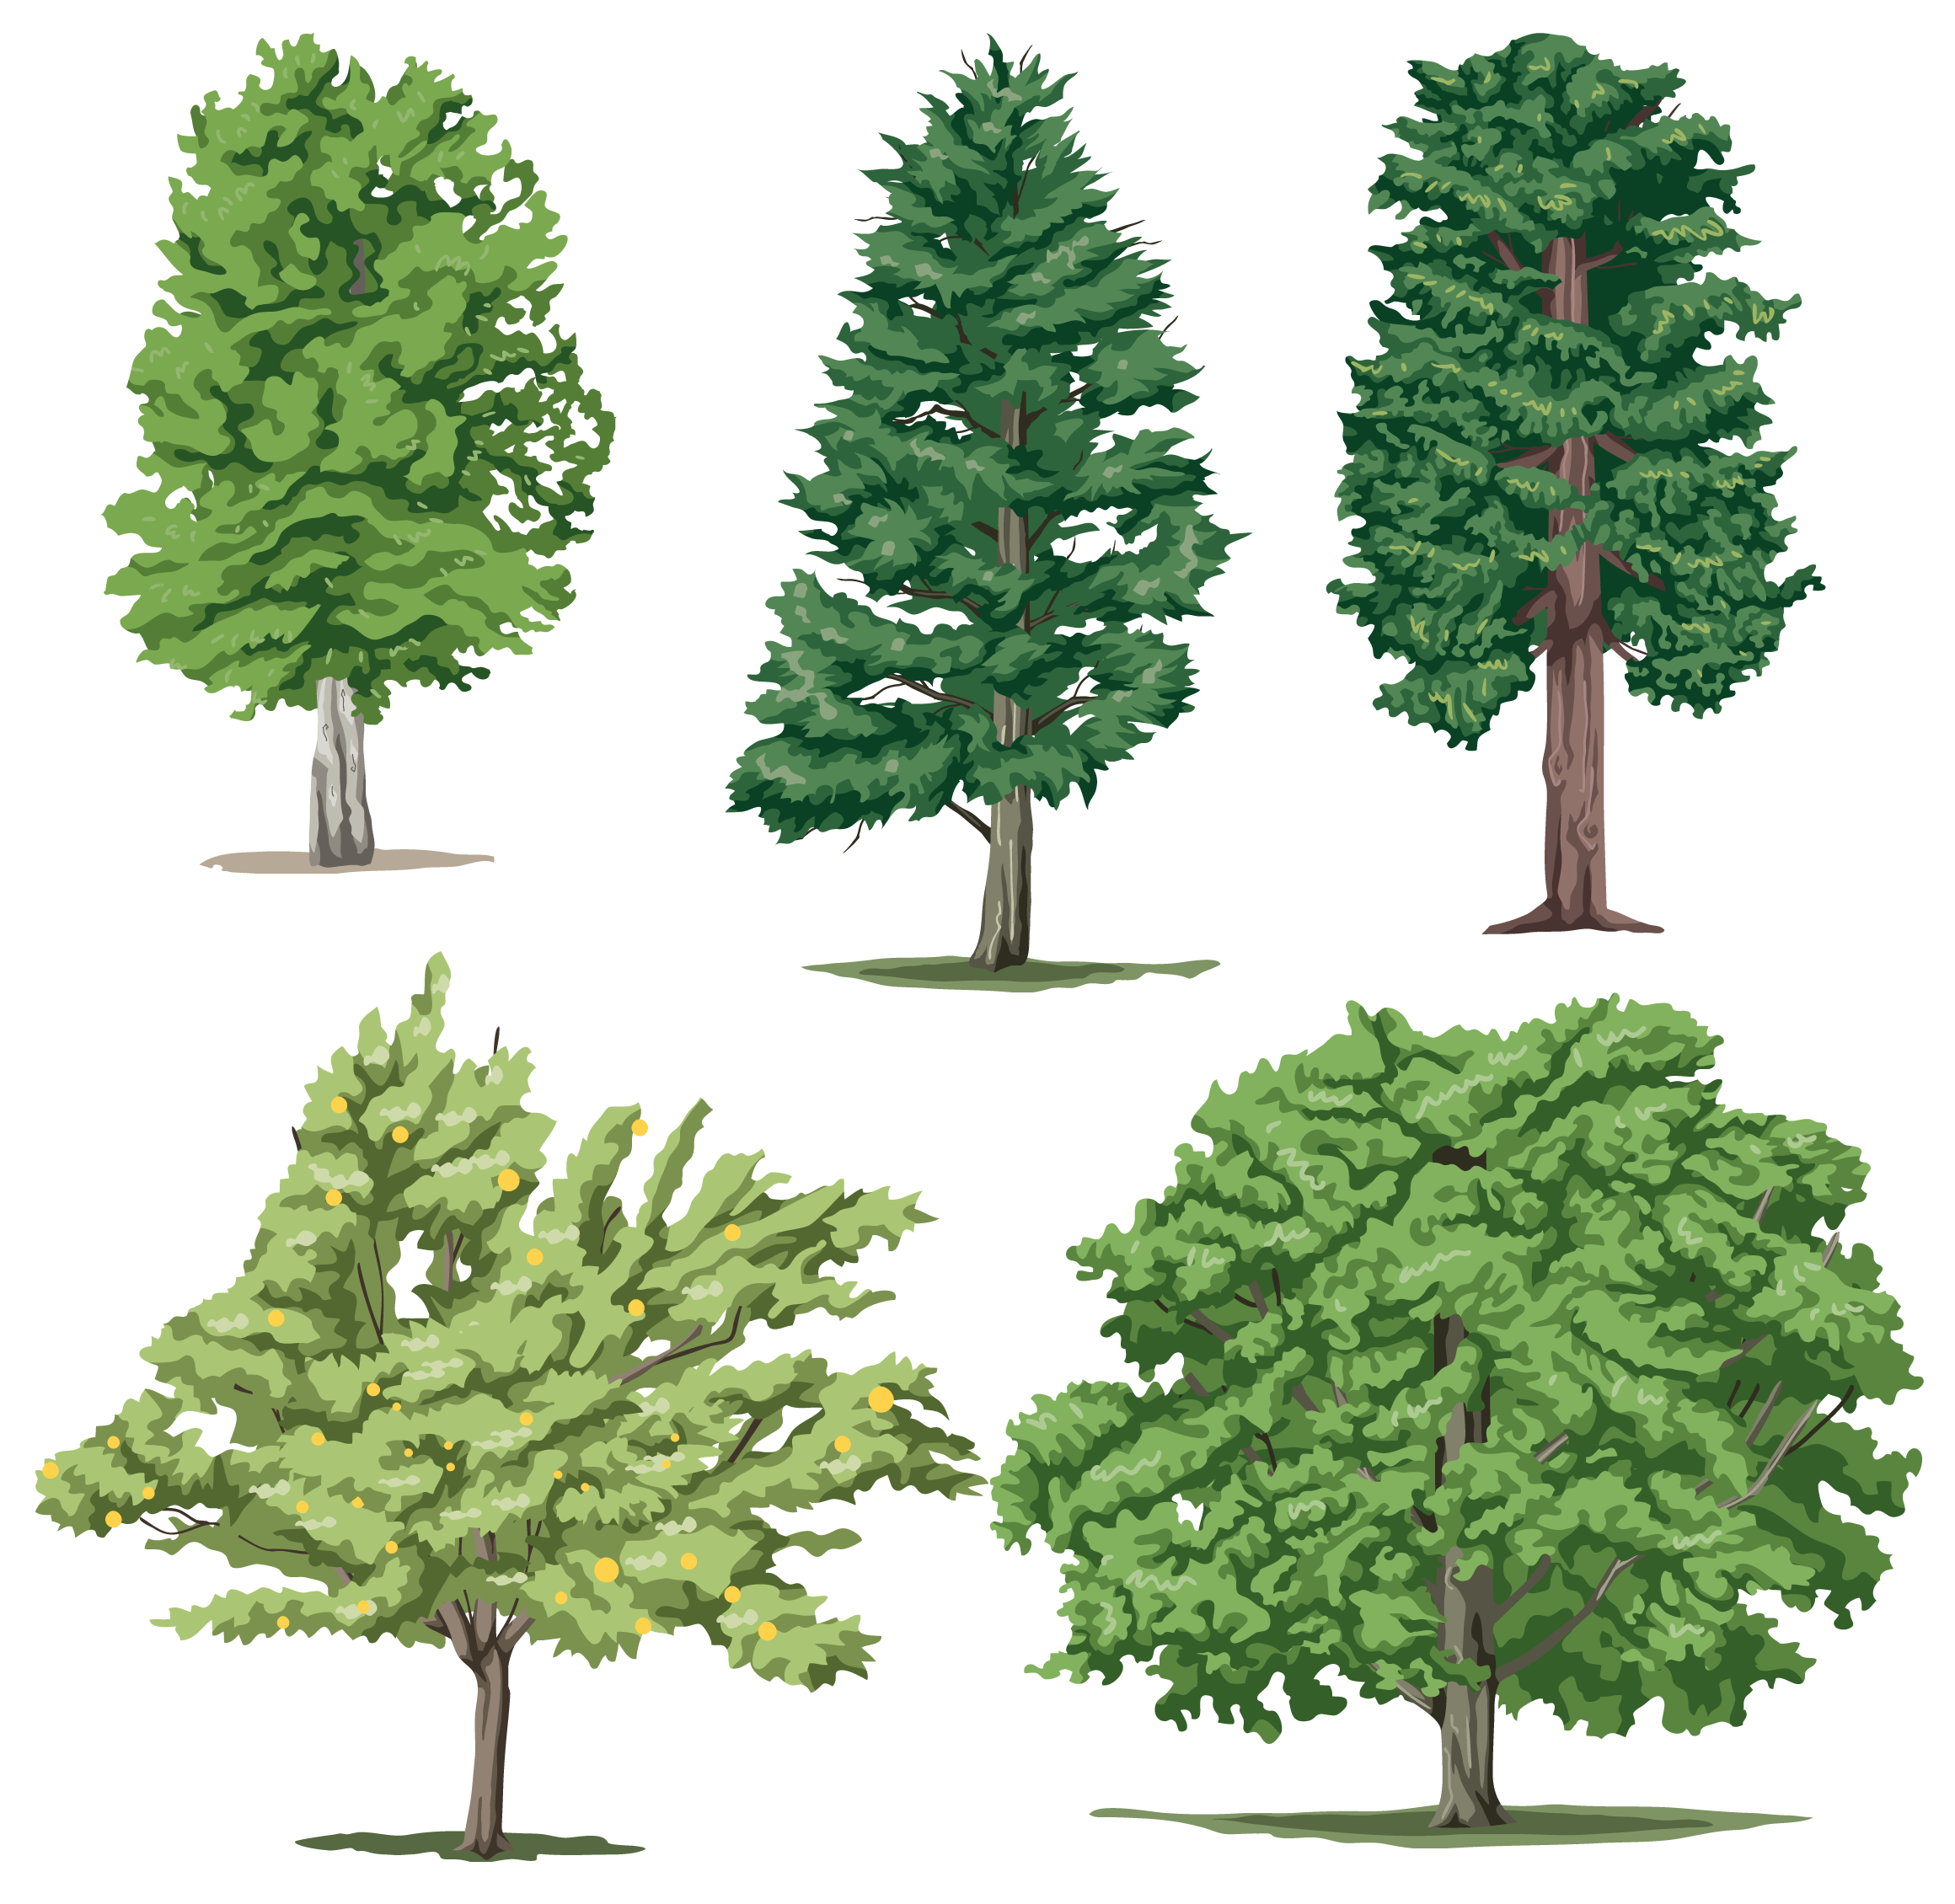 Tree Png Cartoon Realistic Trees All Types.